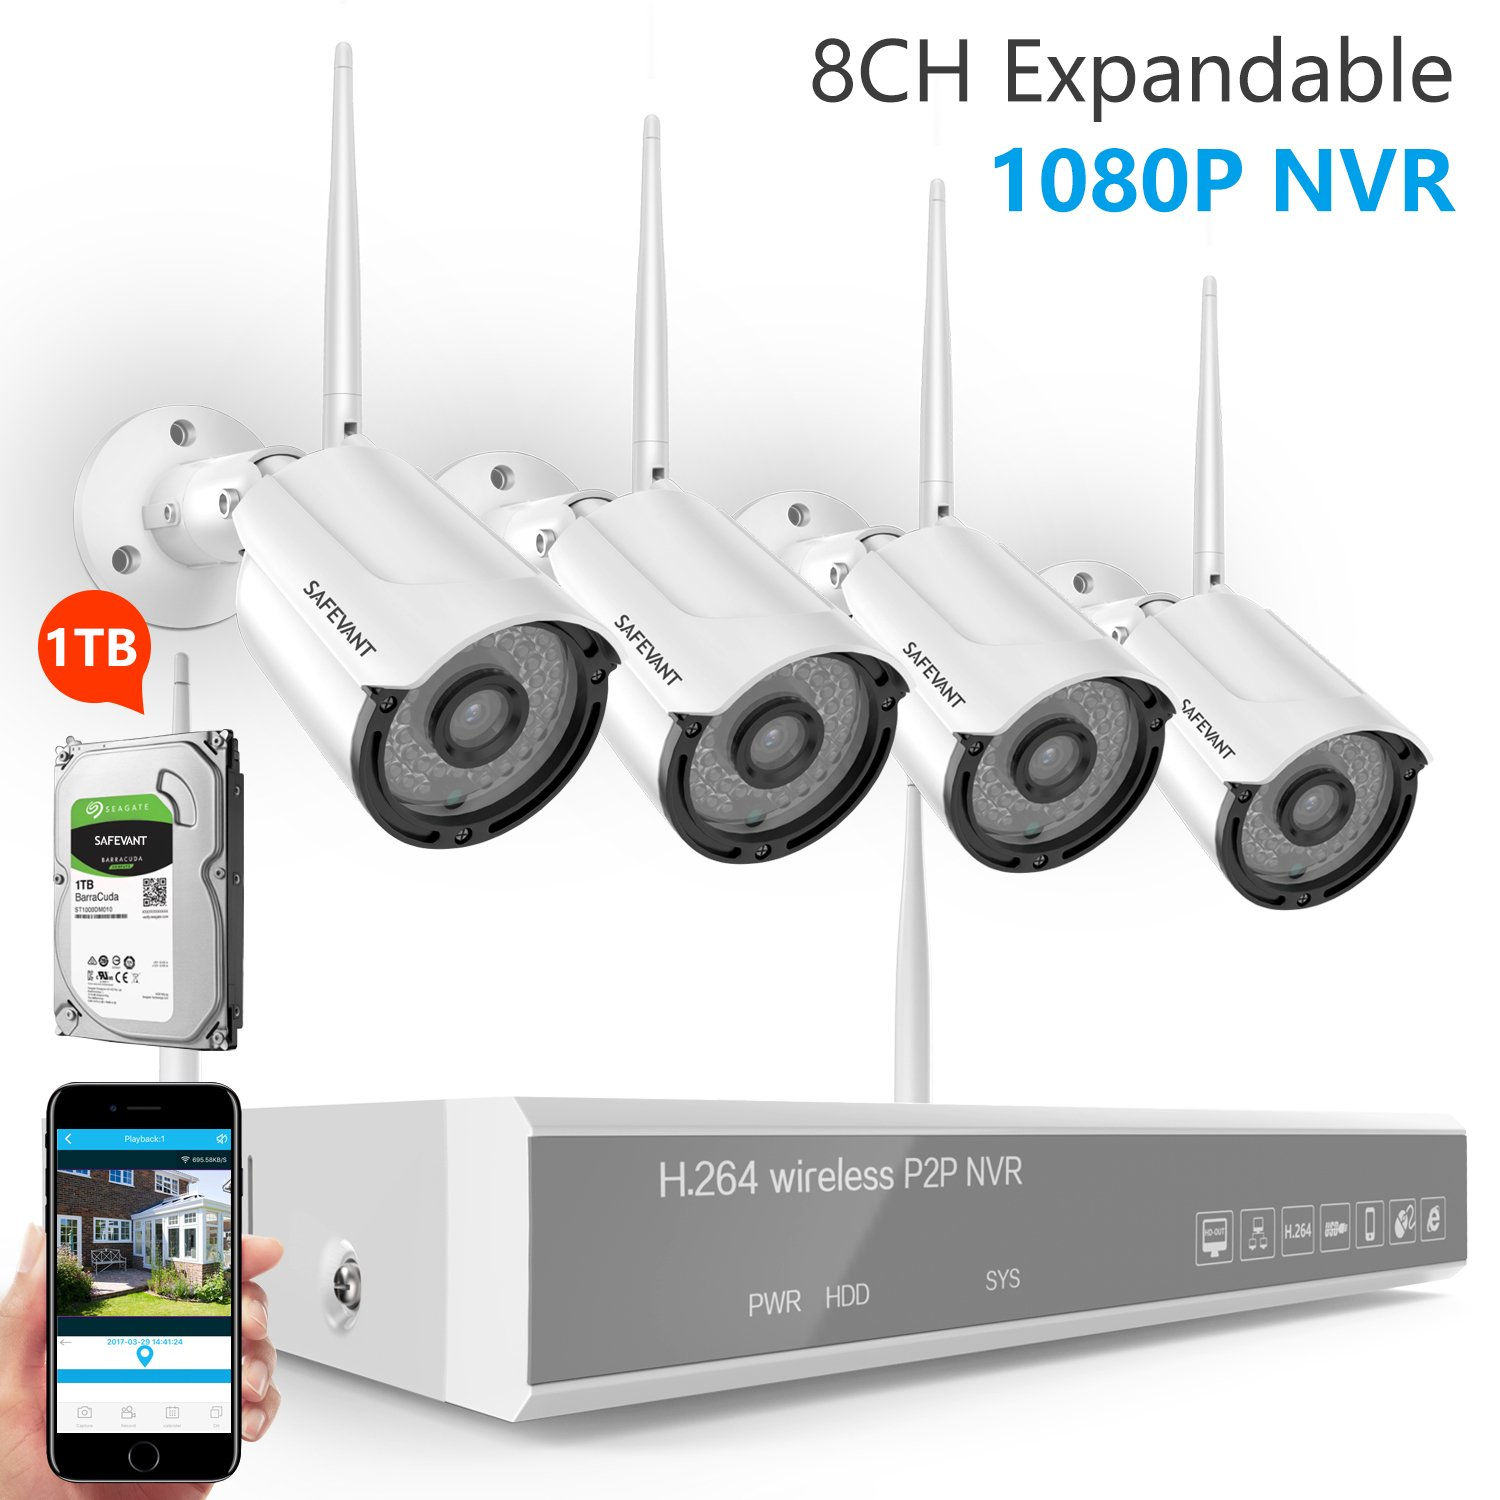 Expandable System] Wireless Security Camera System, Safevant